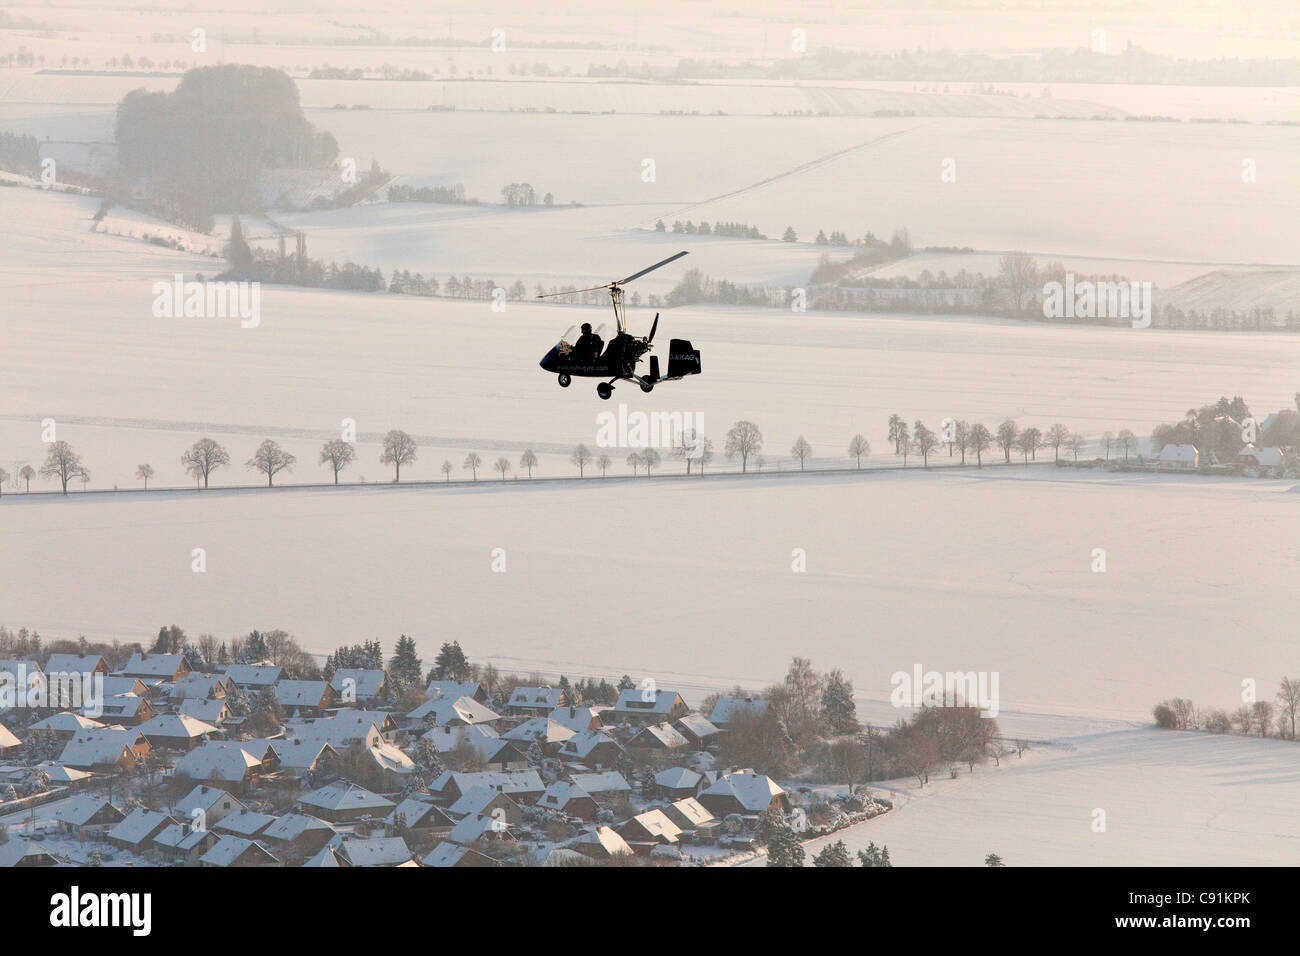 Aerial view of a two-seater autogyro, gyrocopter above a winter landscape, Lower Saxony, Germany - Stock Image